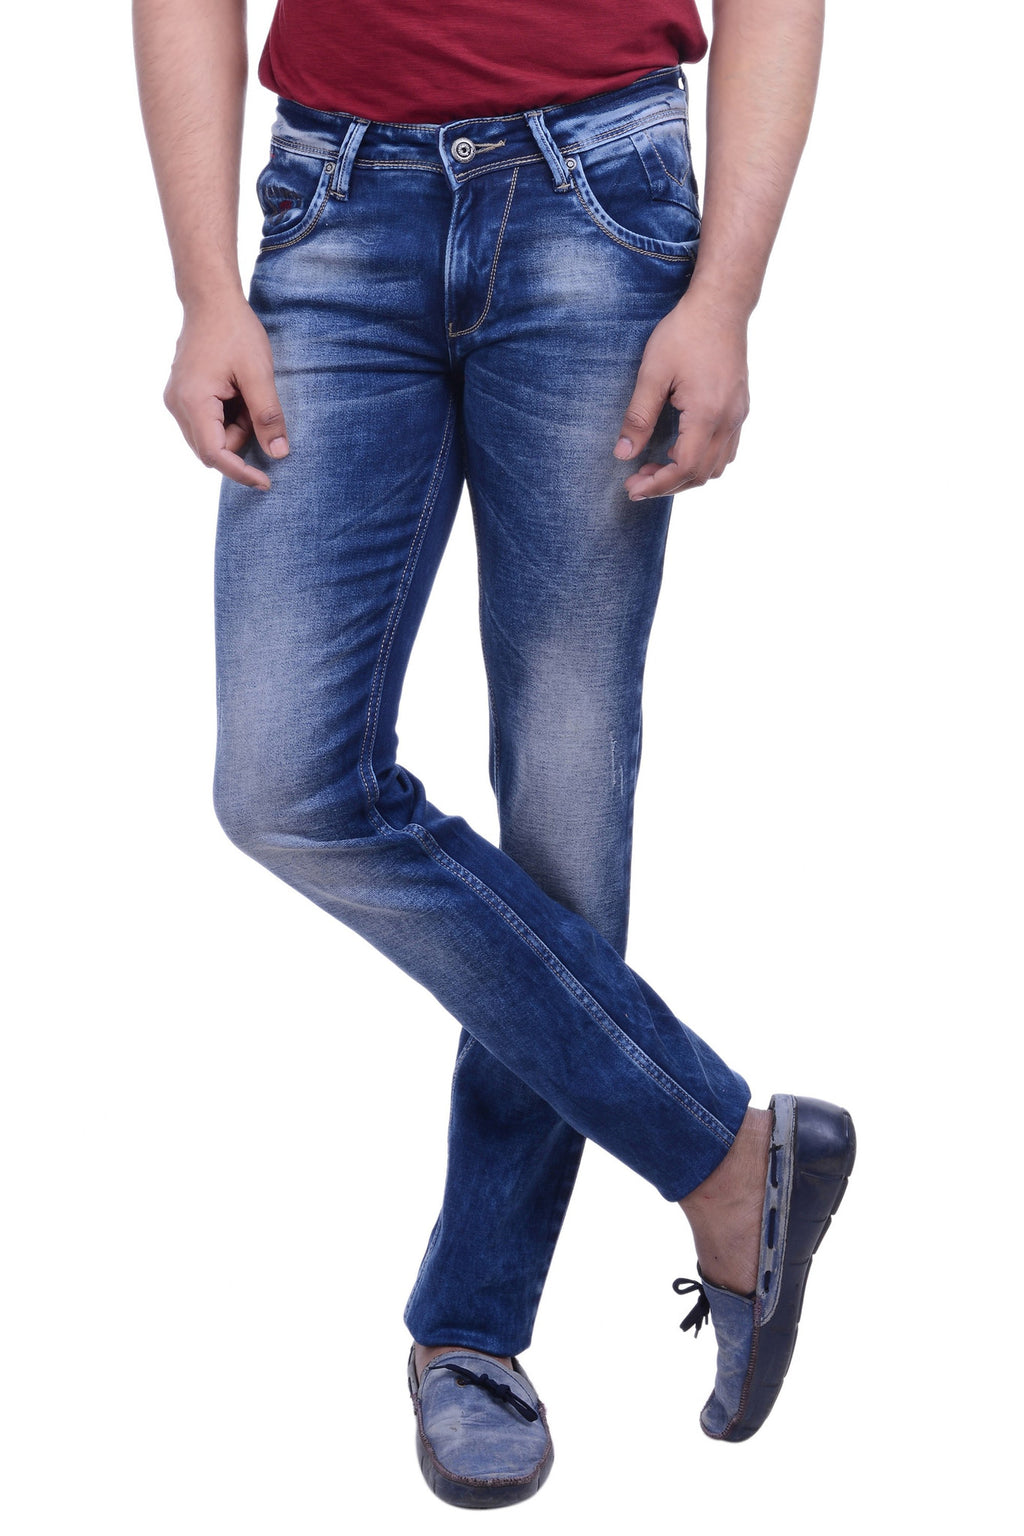 Hoffmen Slim Fit Men's Jeans JH544